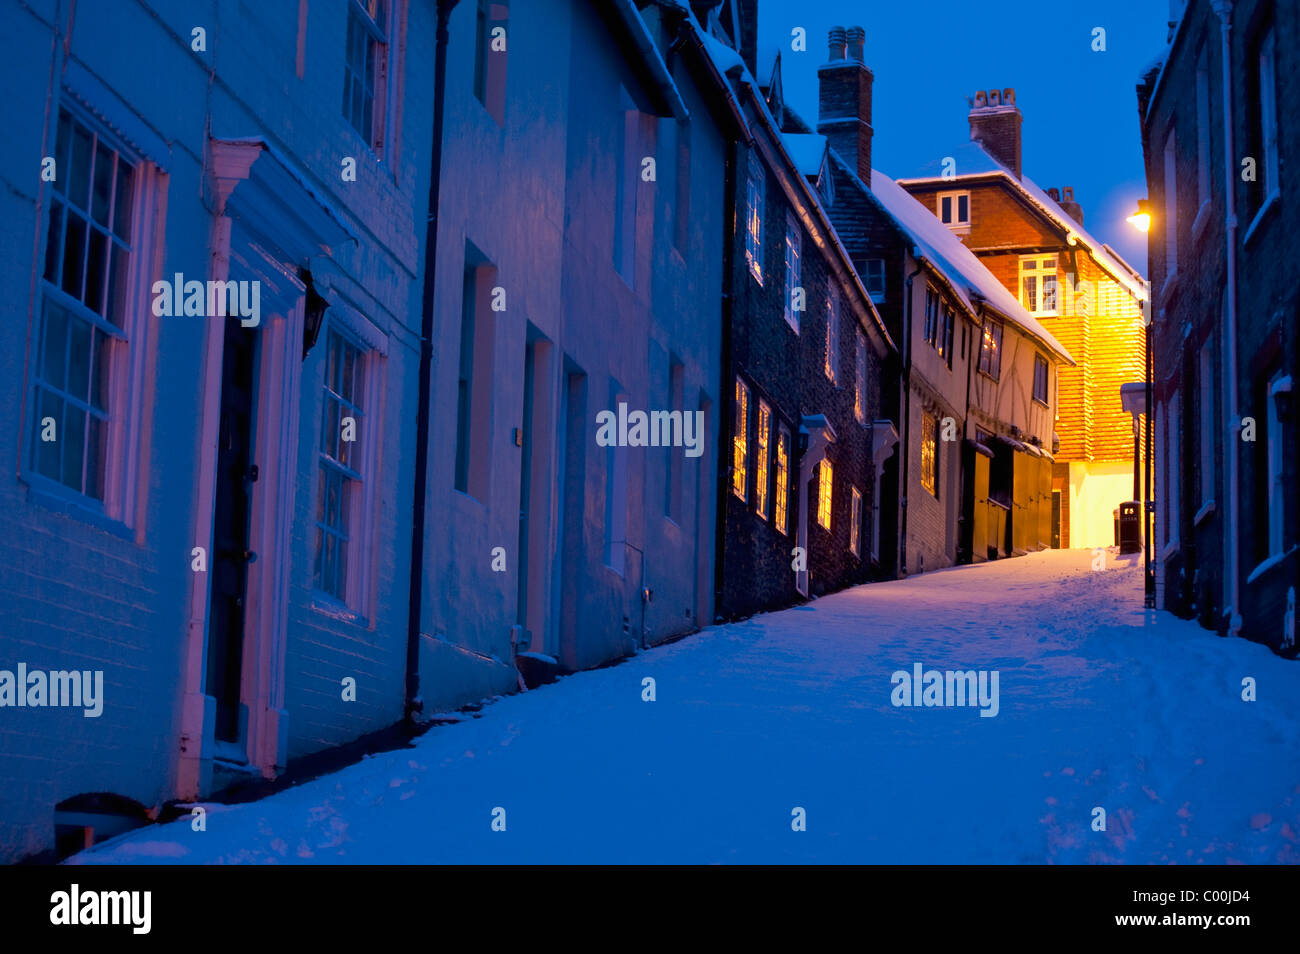 Keere Street in winter before dawn Stock Photo